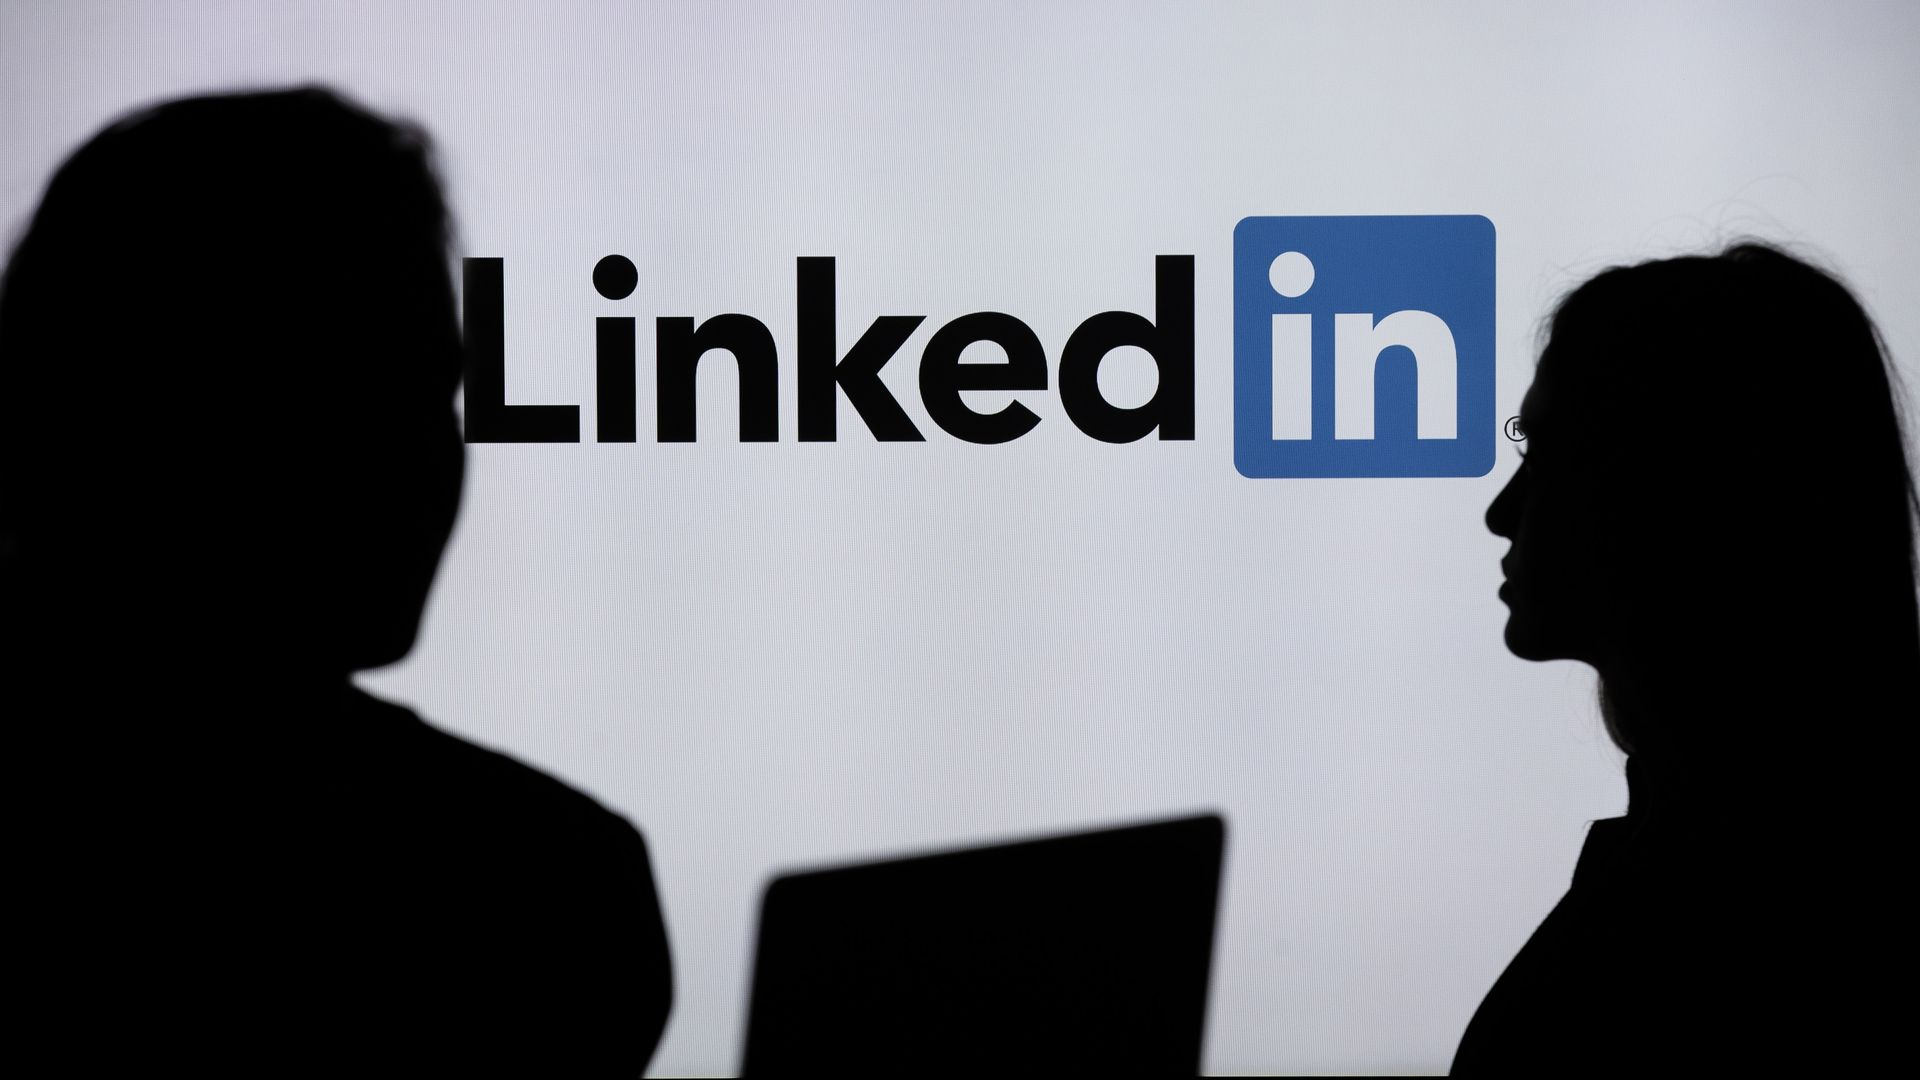 People in a shadow with the LinkedIn logo in the background.